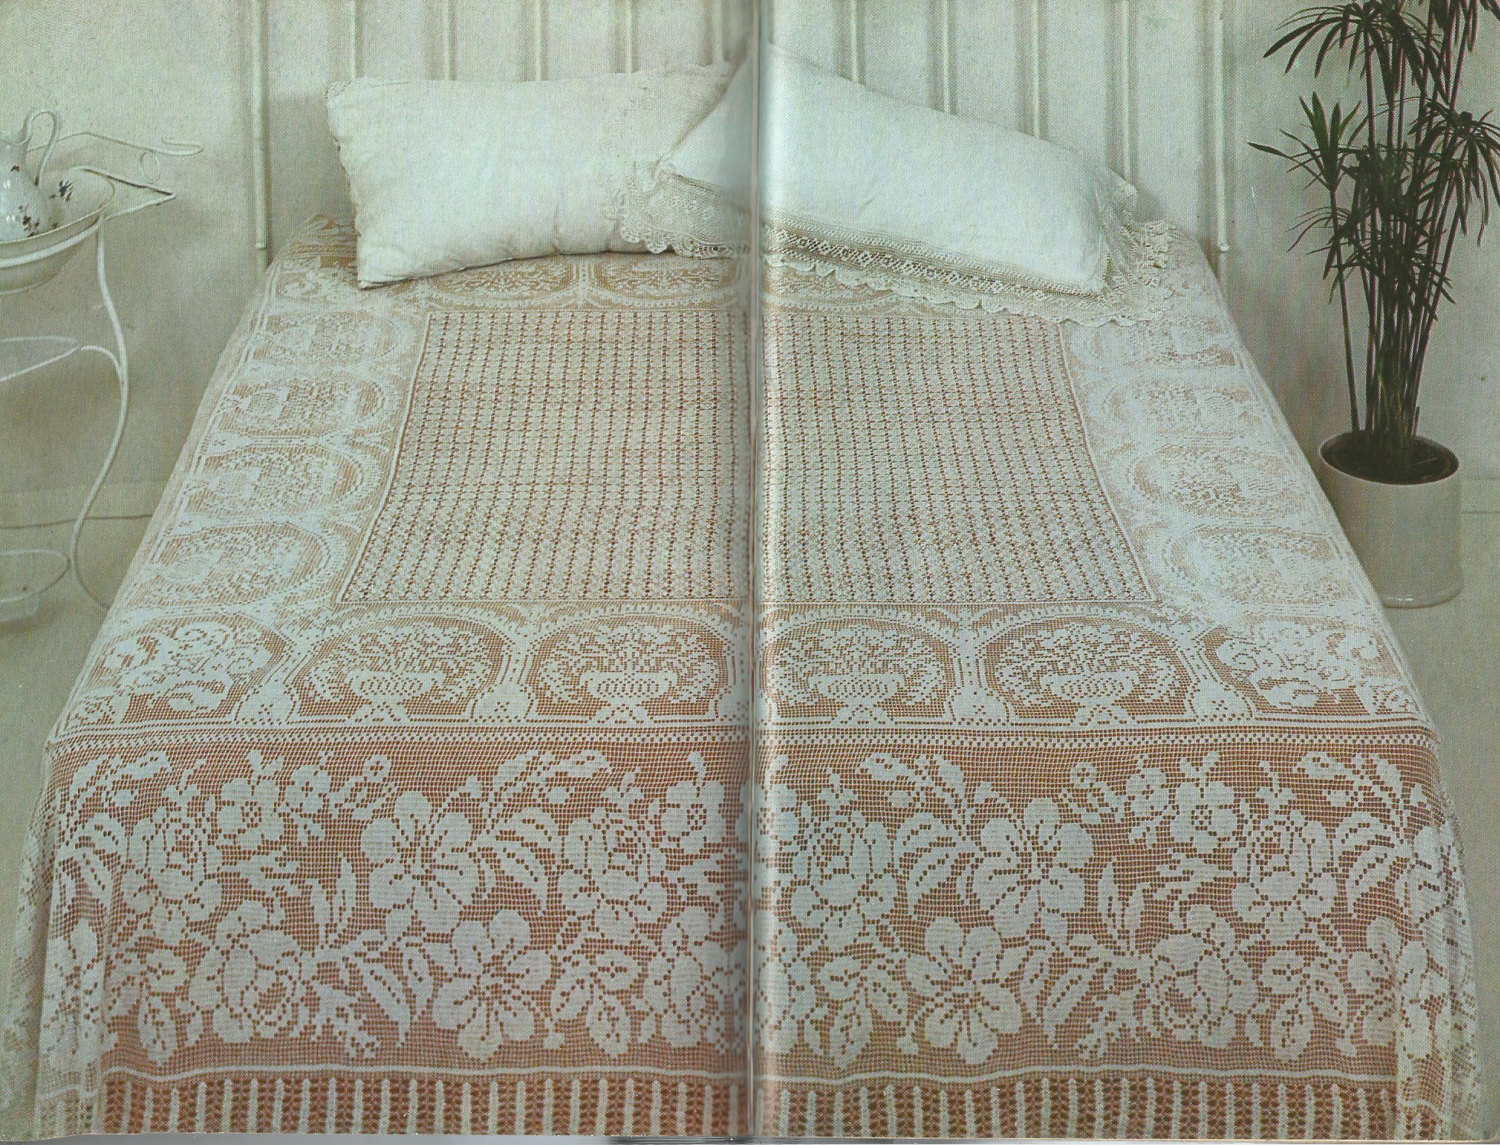 Crochet Bedspread Inspirational Vintage Double Bedspread In Filet Crochet Pdf Pattern Of Unique 38 Pics Crochet Bedspread